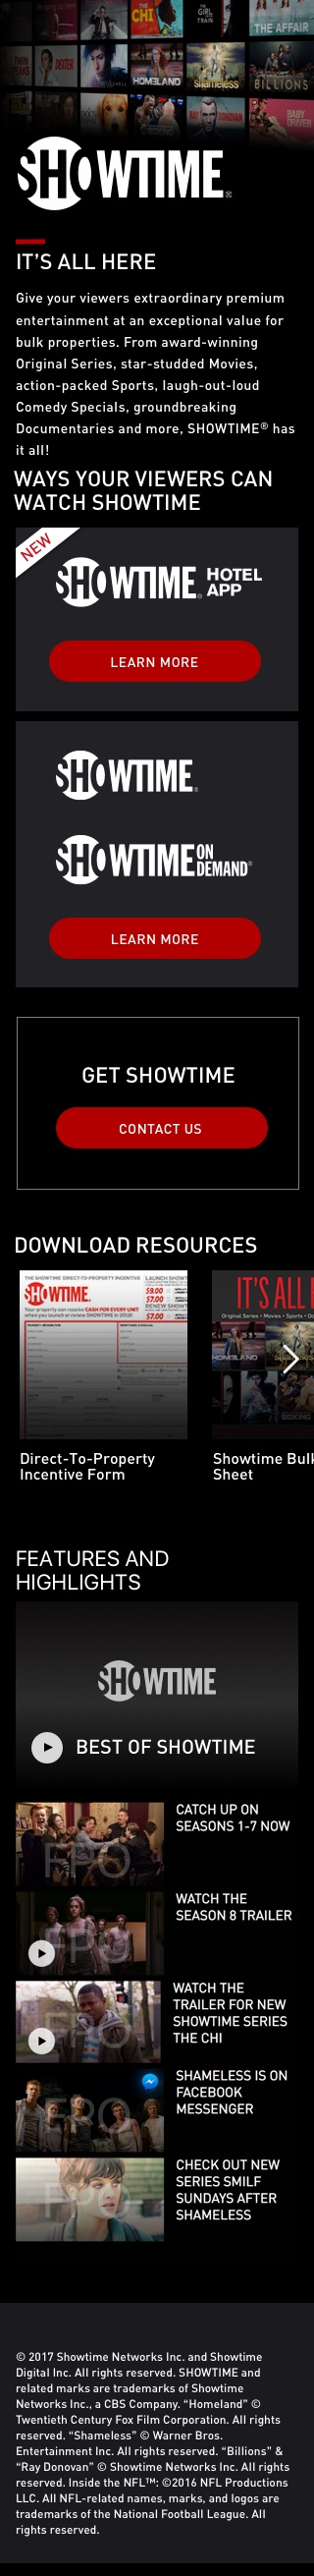 Showtime Bulk Page Iphone